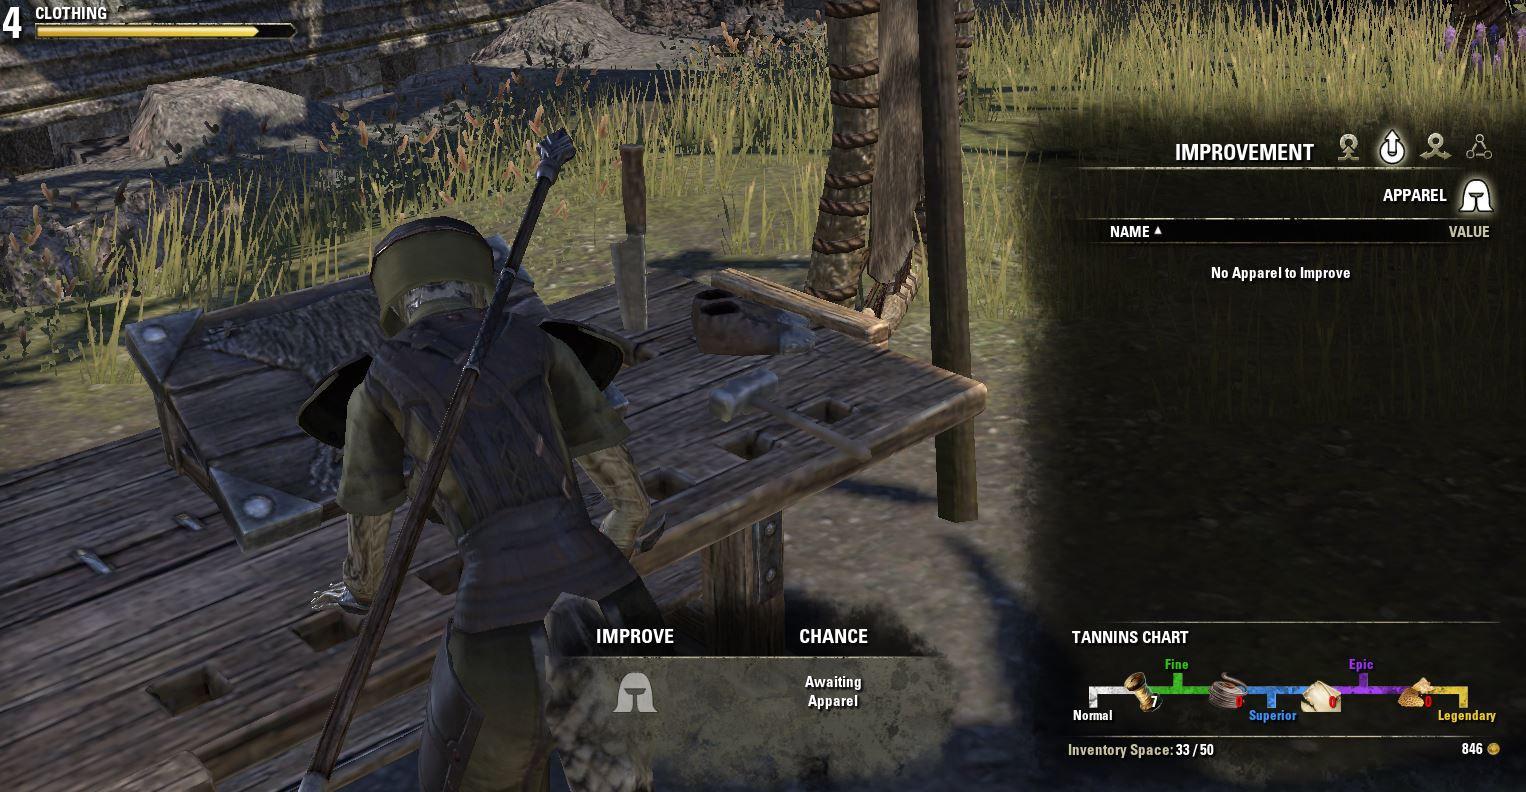 Eso Crafting Elder Scrolls Online Clothing Crafts And Motif